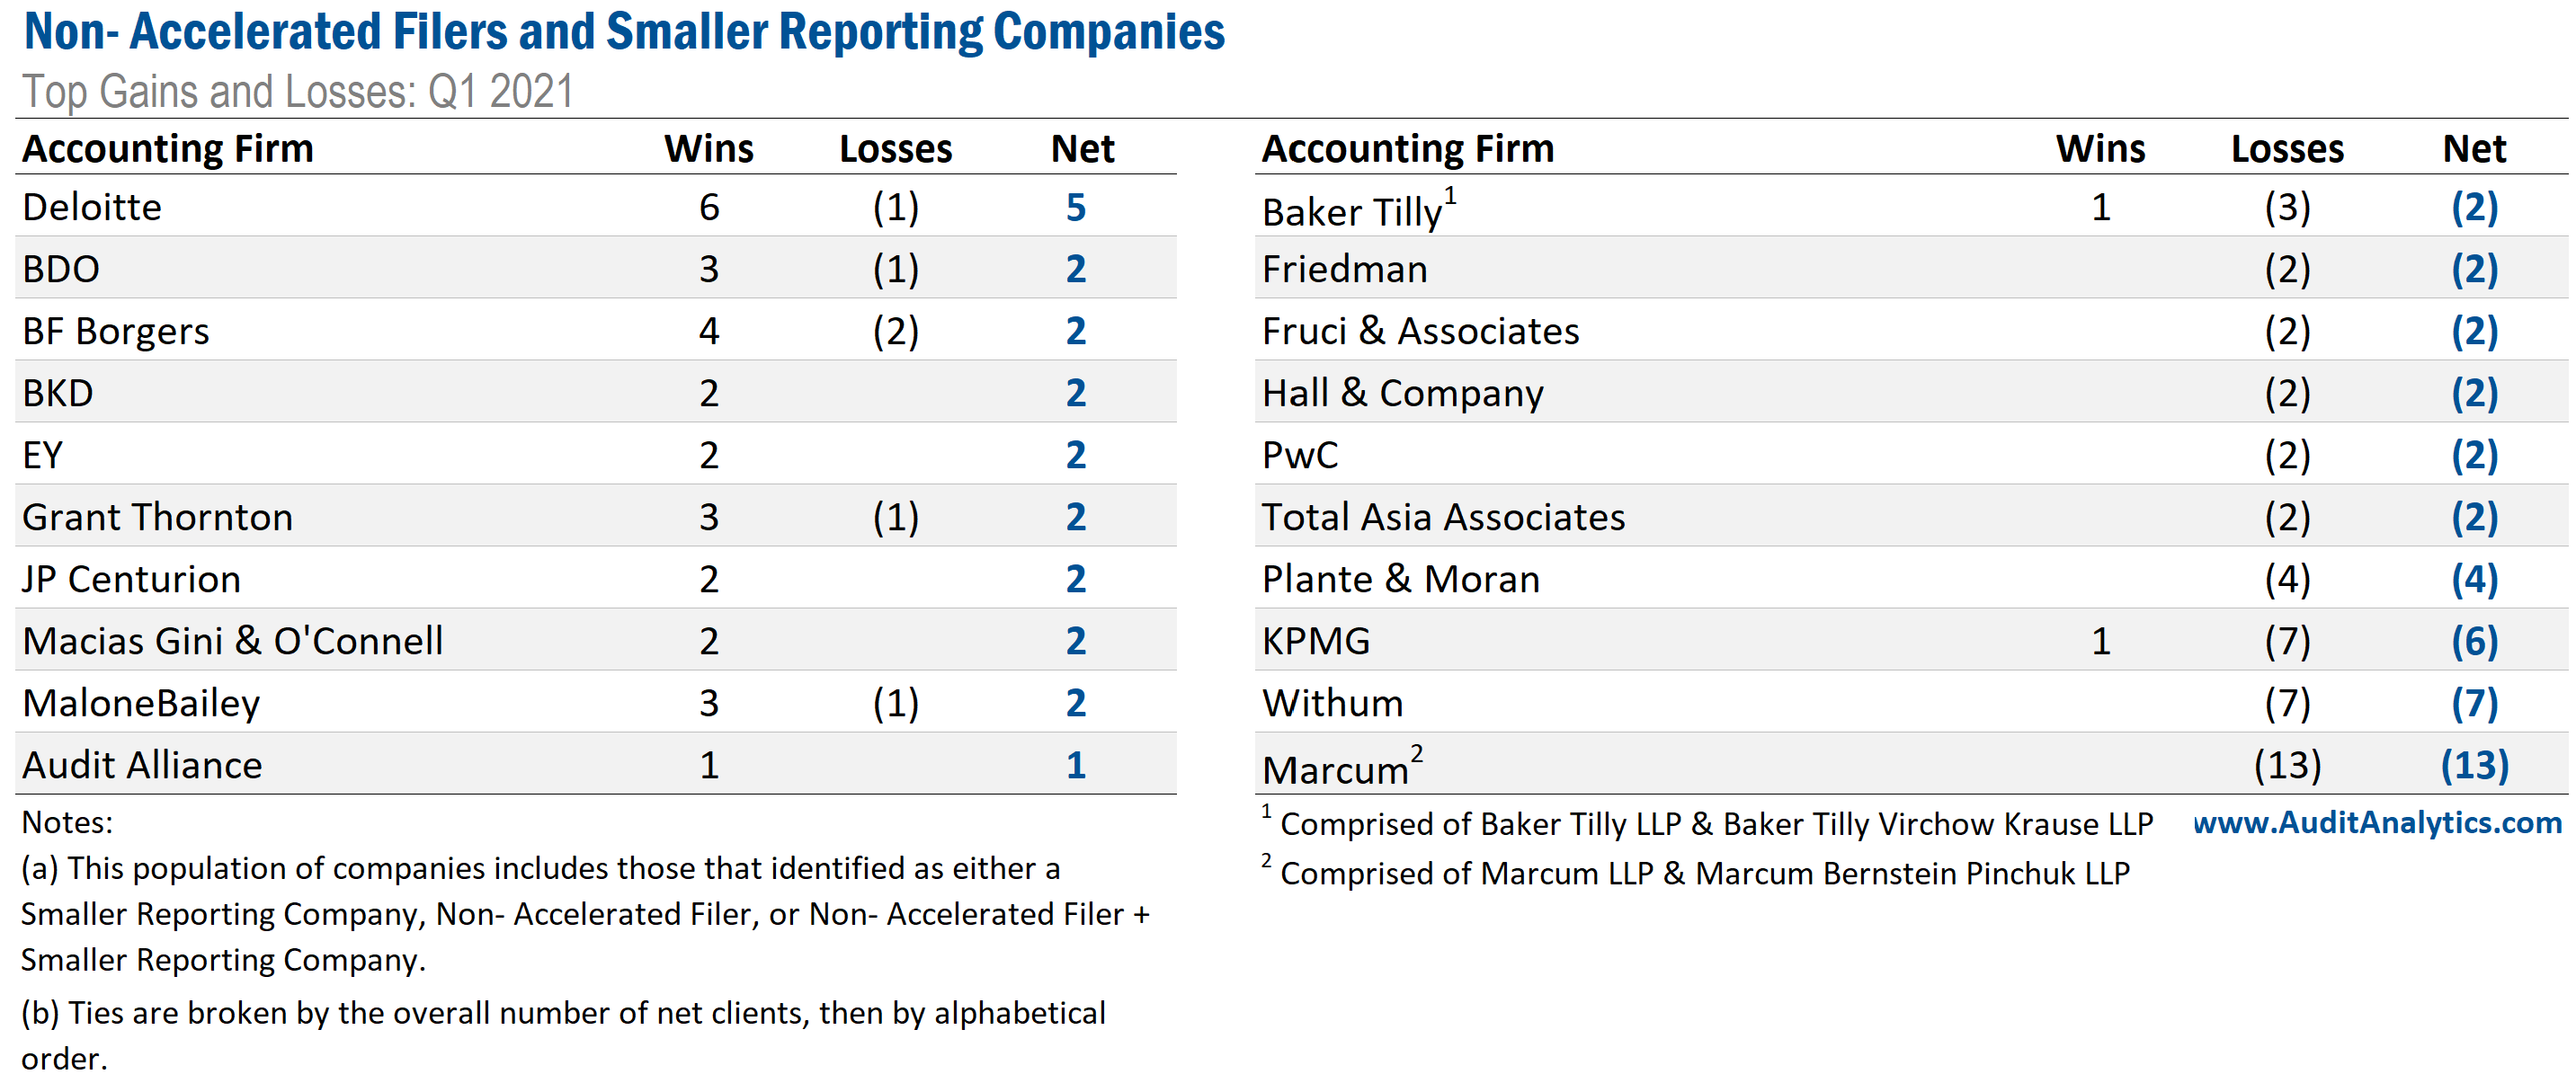 Non-Accelerated Filers and Smaller Reporting Companies Top Gains and Losses: Q1 2021